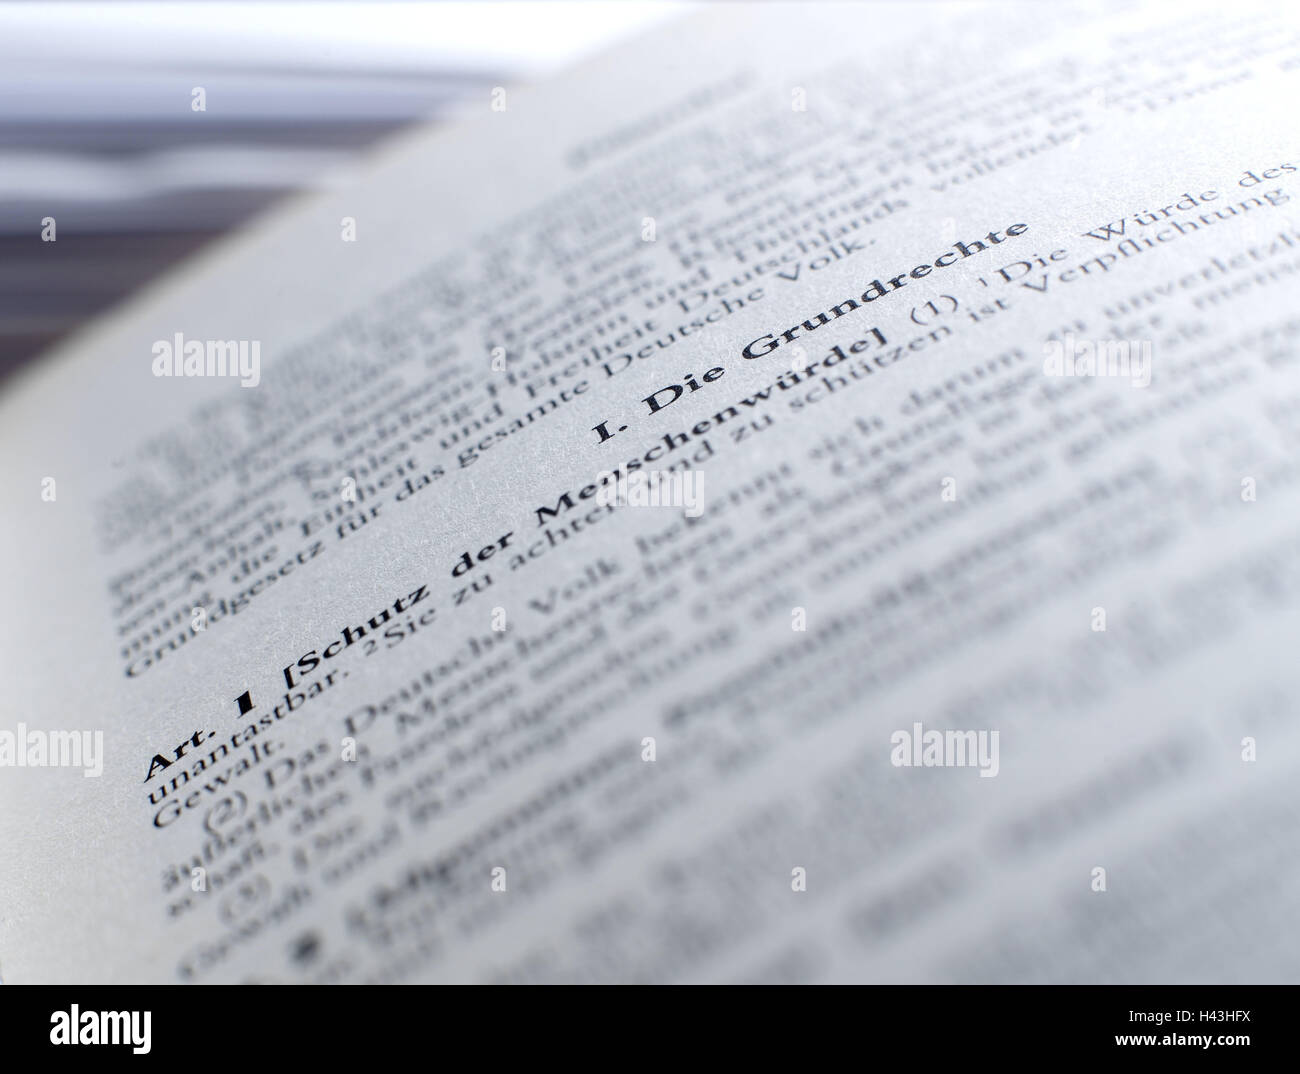 Book, basic law, whipped, fundamental rights, Germany, Basic Law, code law, pages, rights, constitution, article, - Stock Image